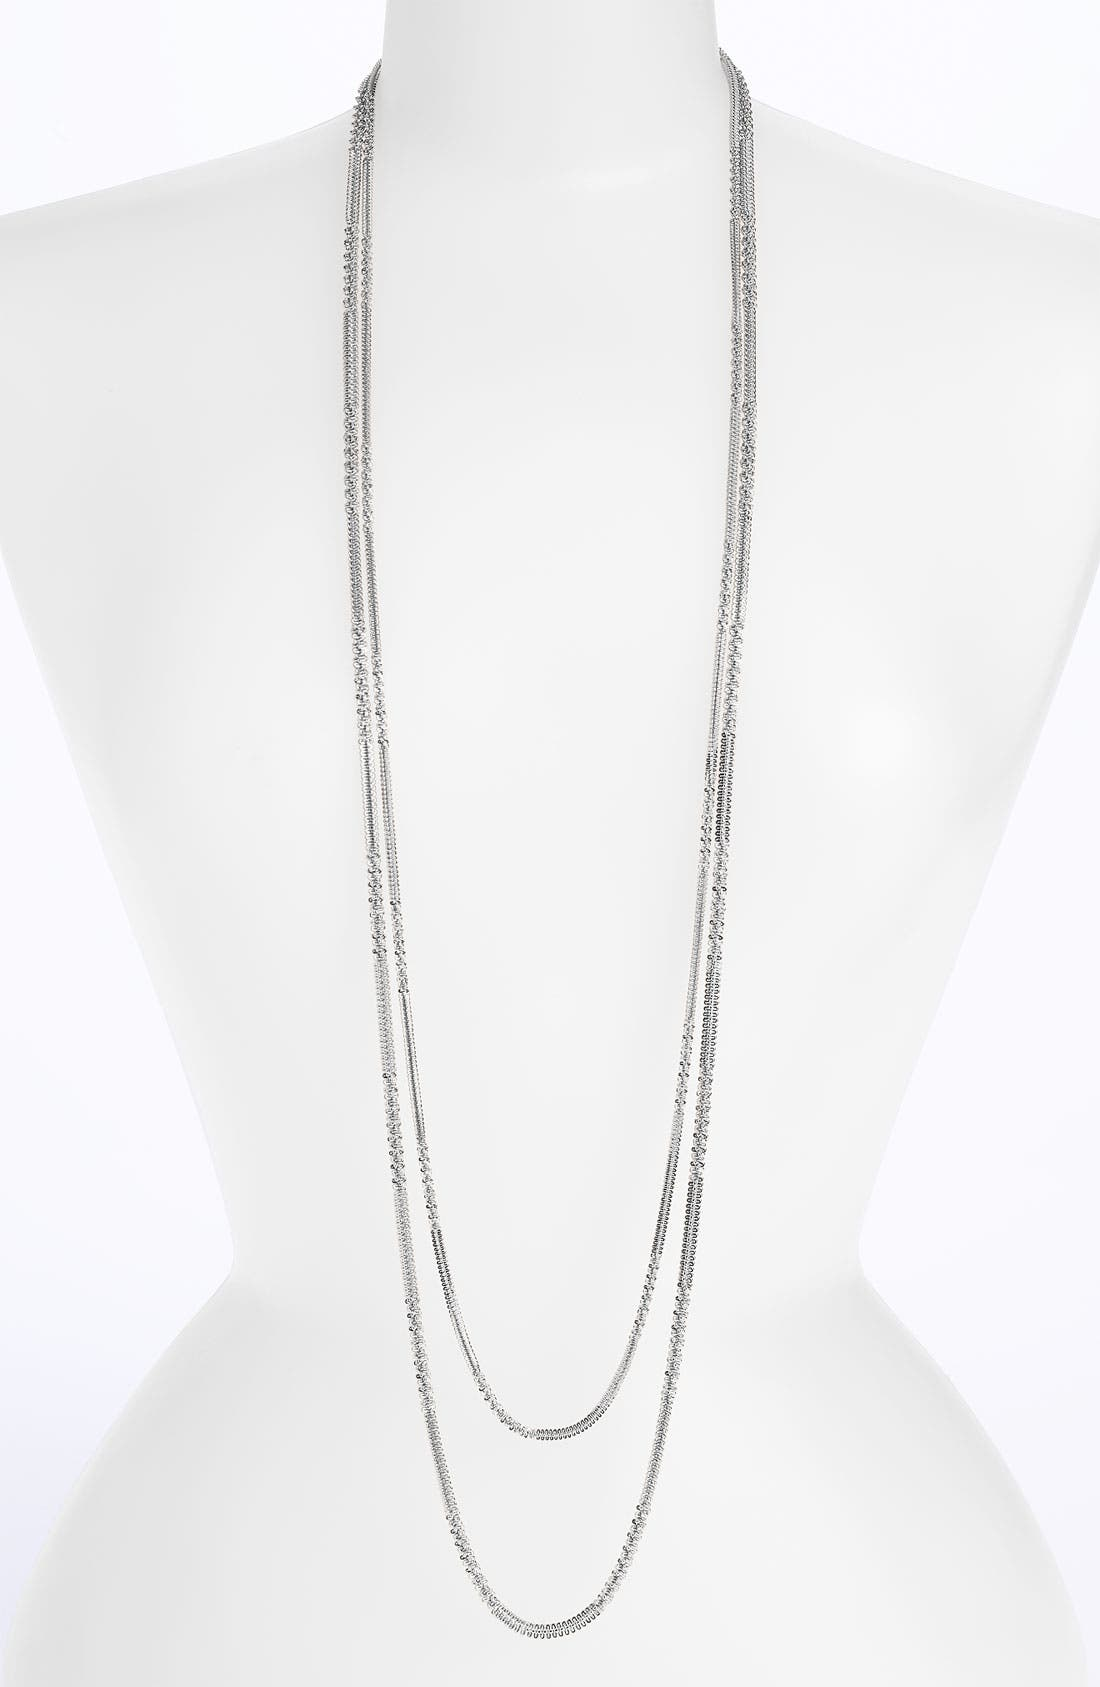 Main Image - Natasha Couture Double Strand Layering Necklace